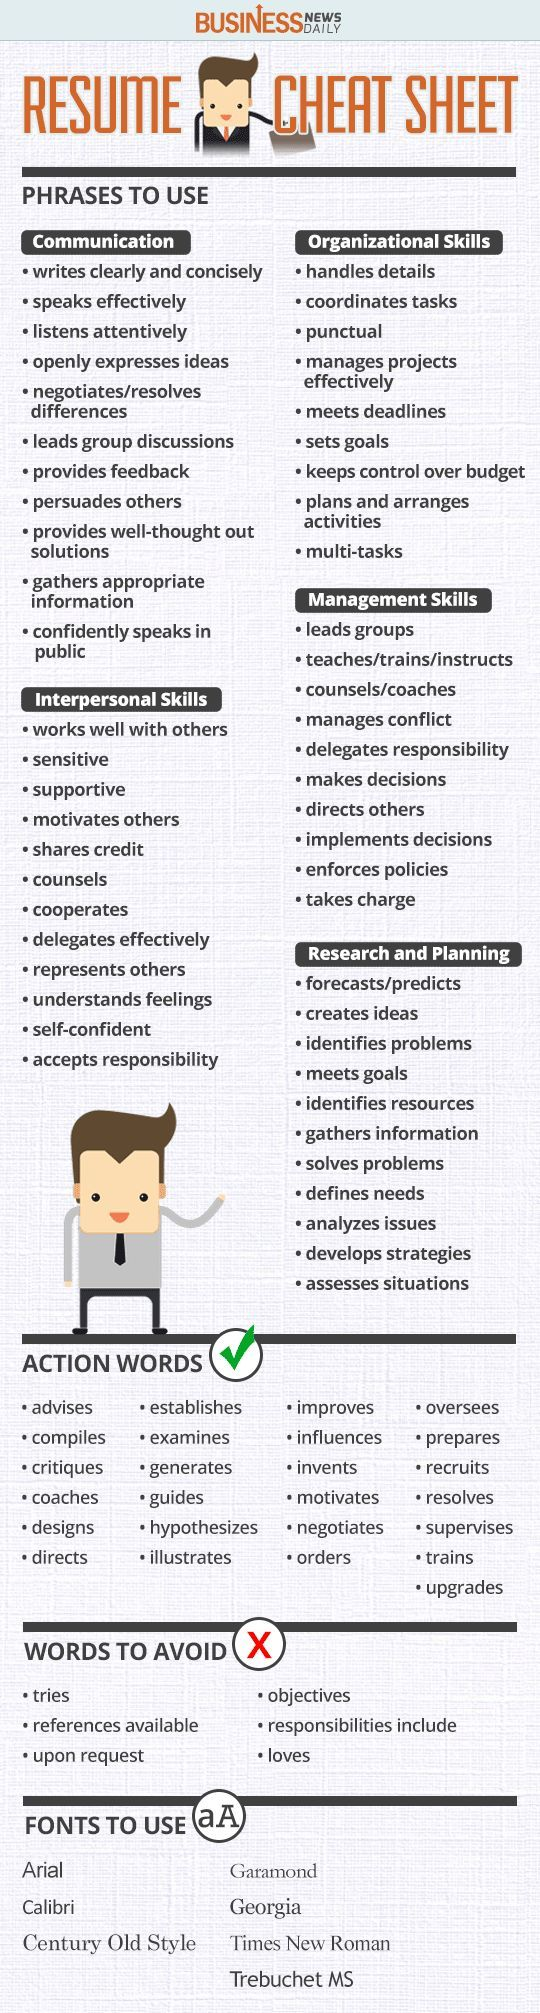 best ideas about interview questions job crystaldiercks the only resume cheat sheet you will ever need is putting your resume together making you question if you should apply for a job